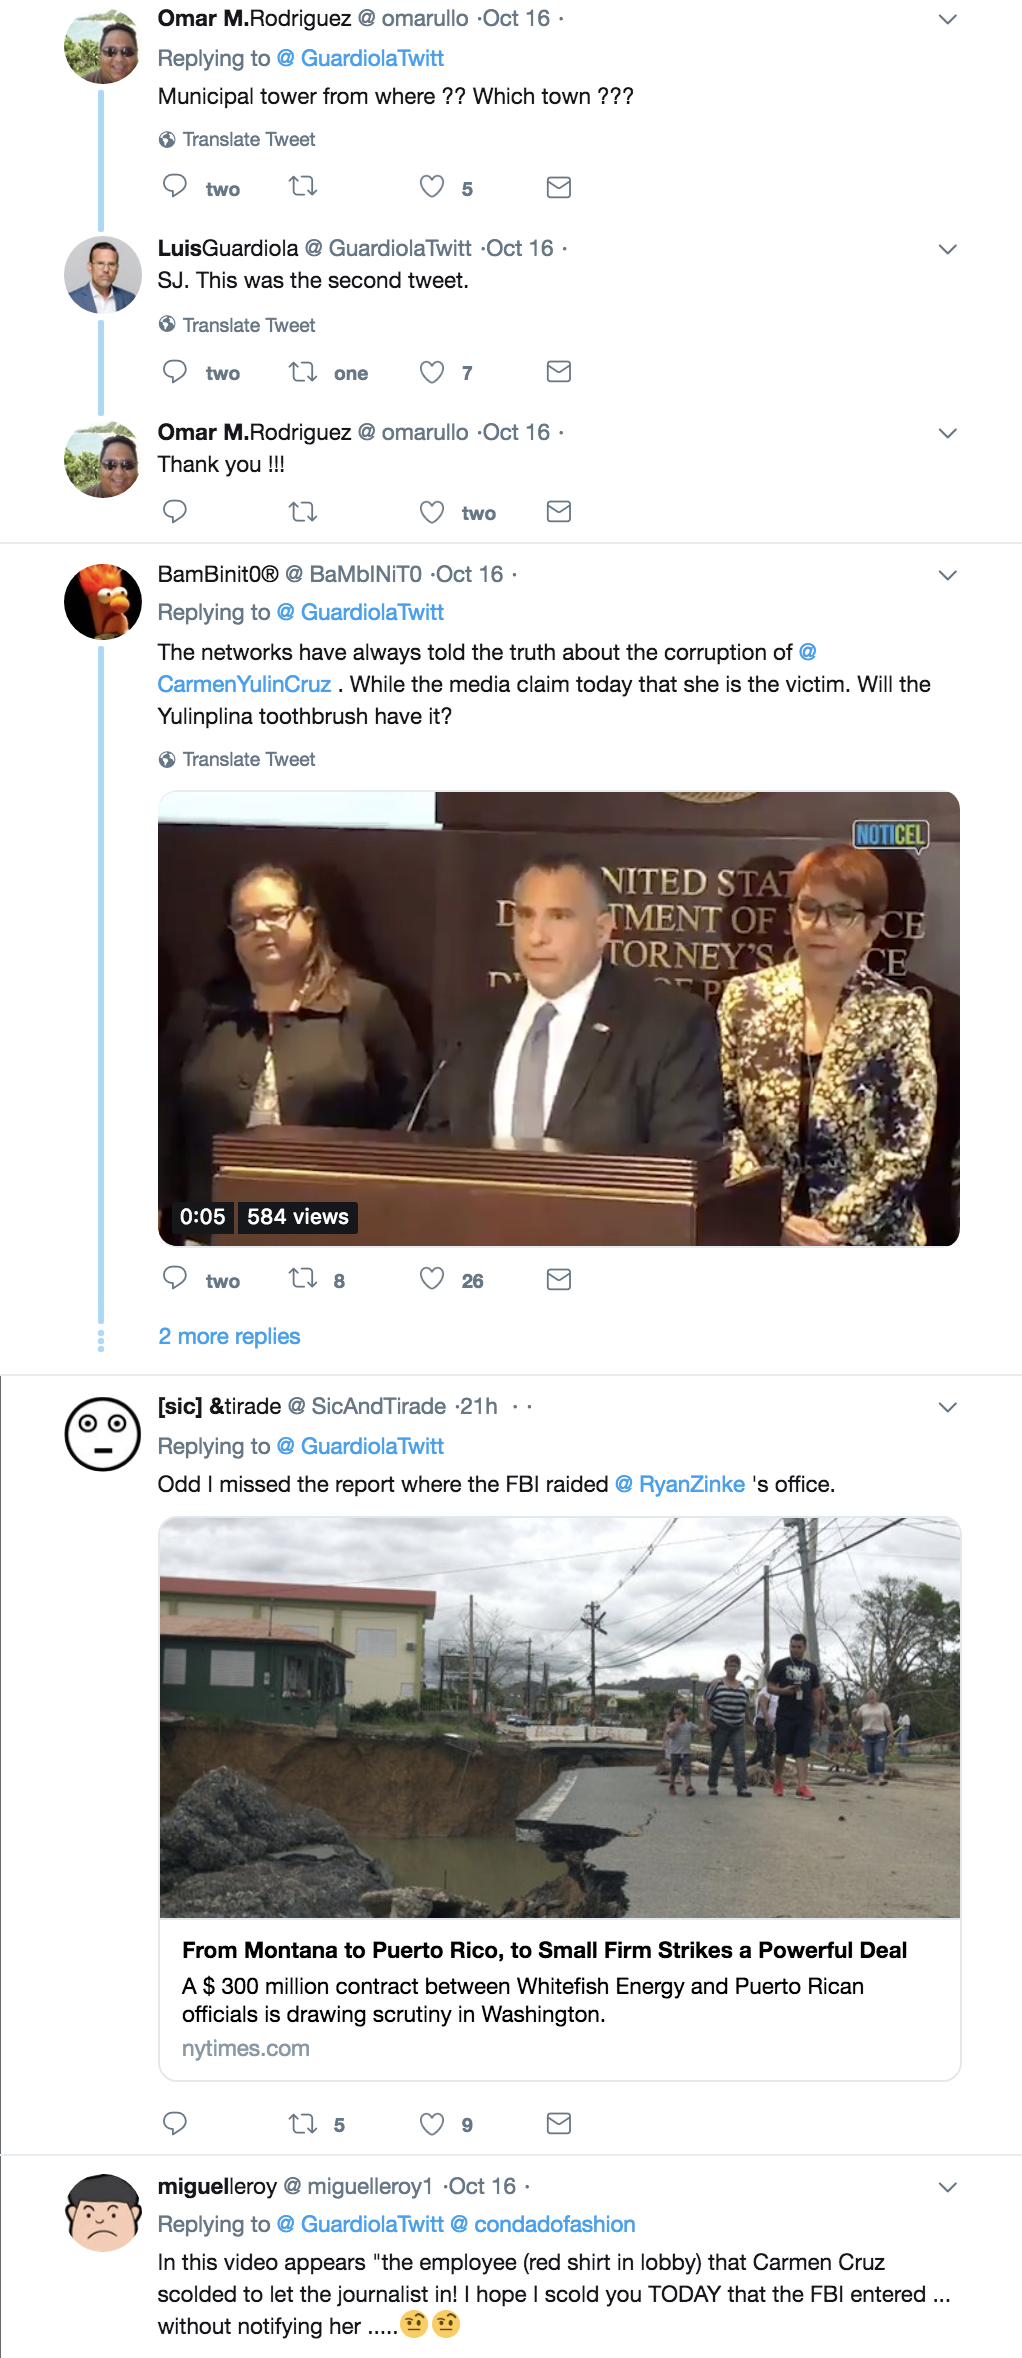 Screen-Shot-2018-10-17-at-9.39.47-AM FBI Swarm Raids Mayor In Puerto Rico After Direct Threats To/From Trump Corruption Domestic Policy Donald Trump Environment Politics Top Stories